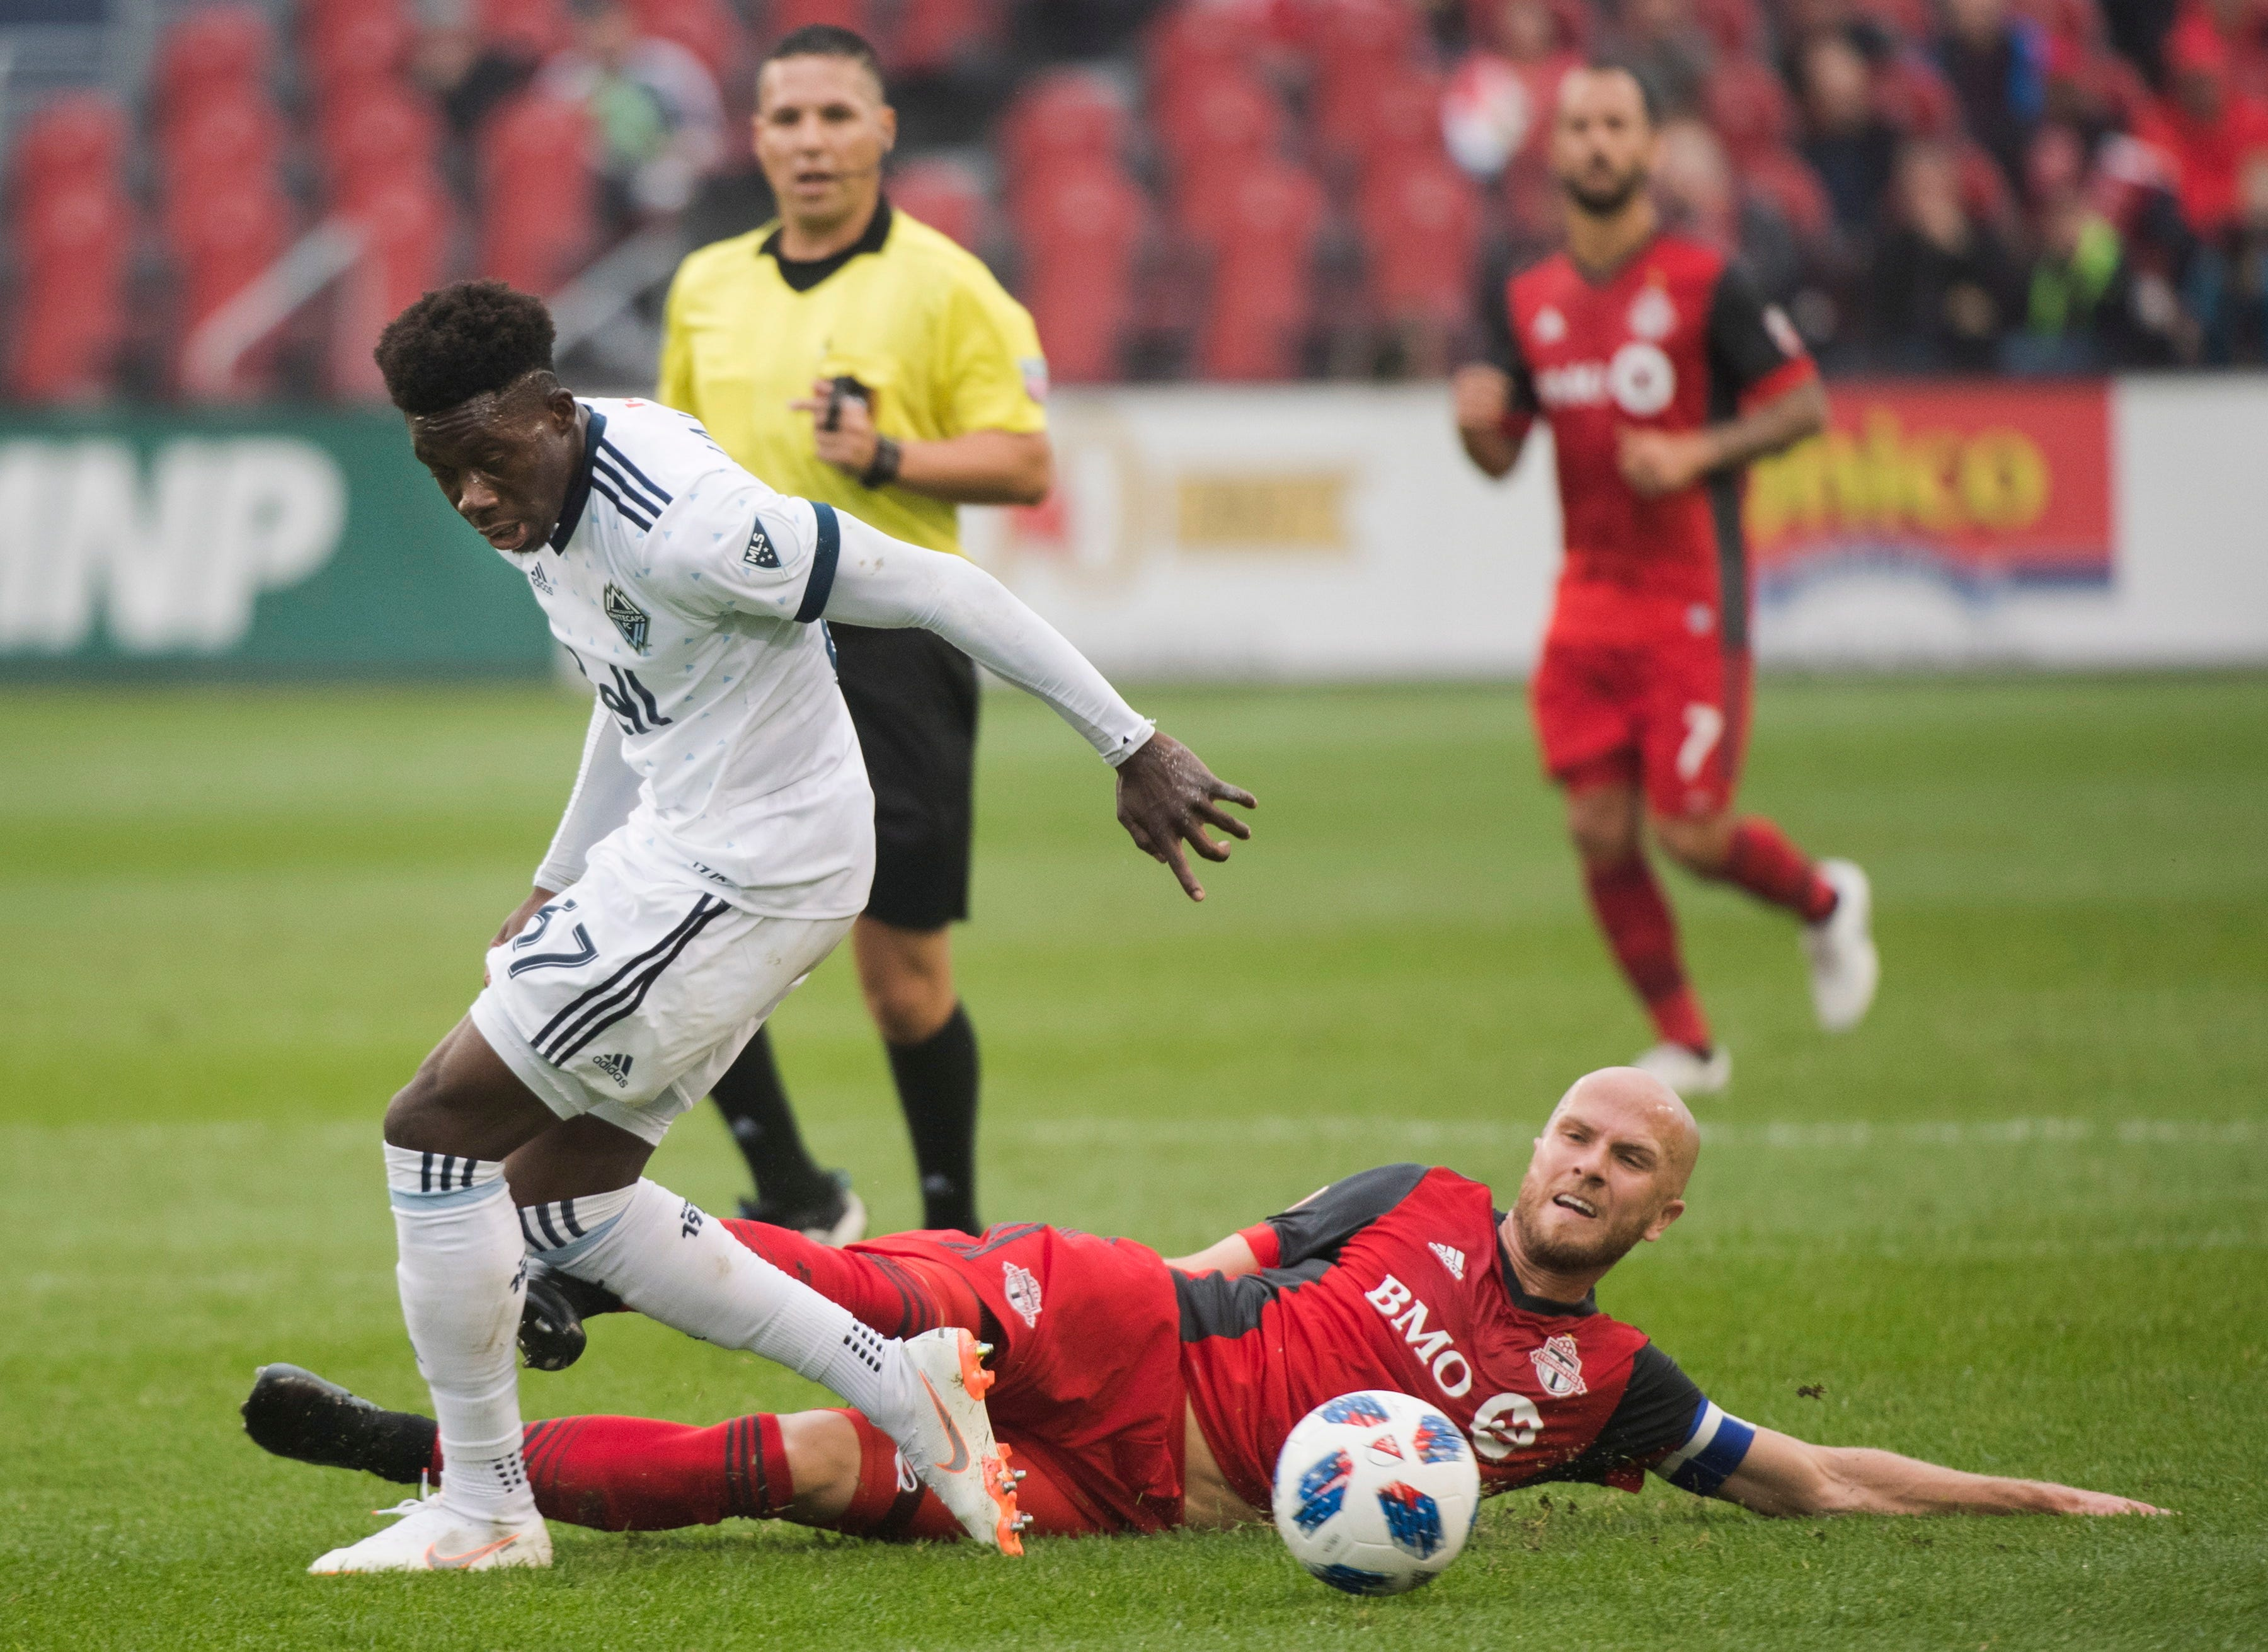 Toronto FC eliminated from playoff contention with loss